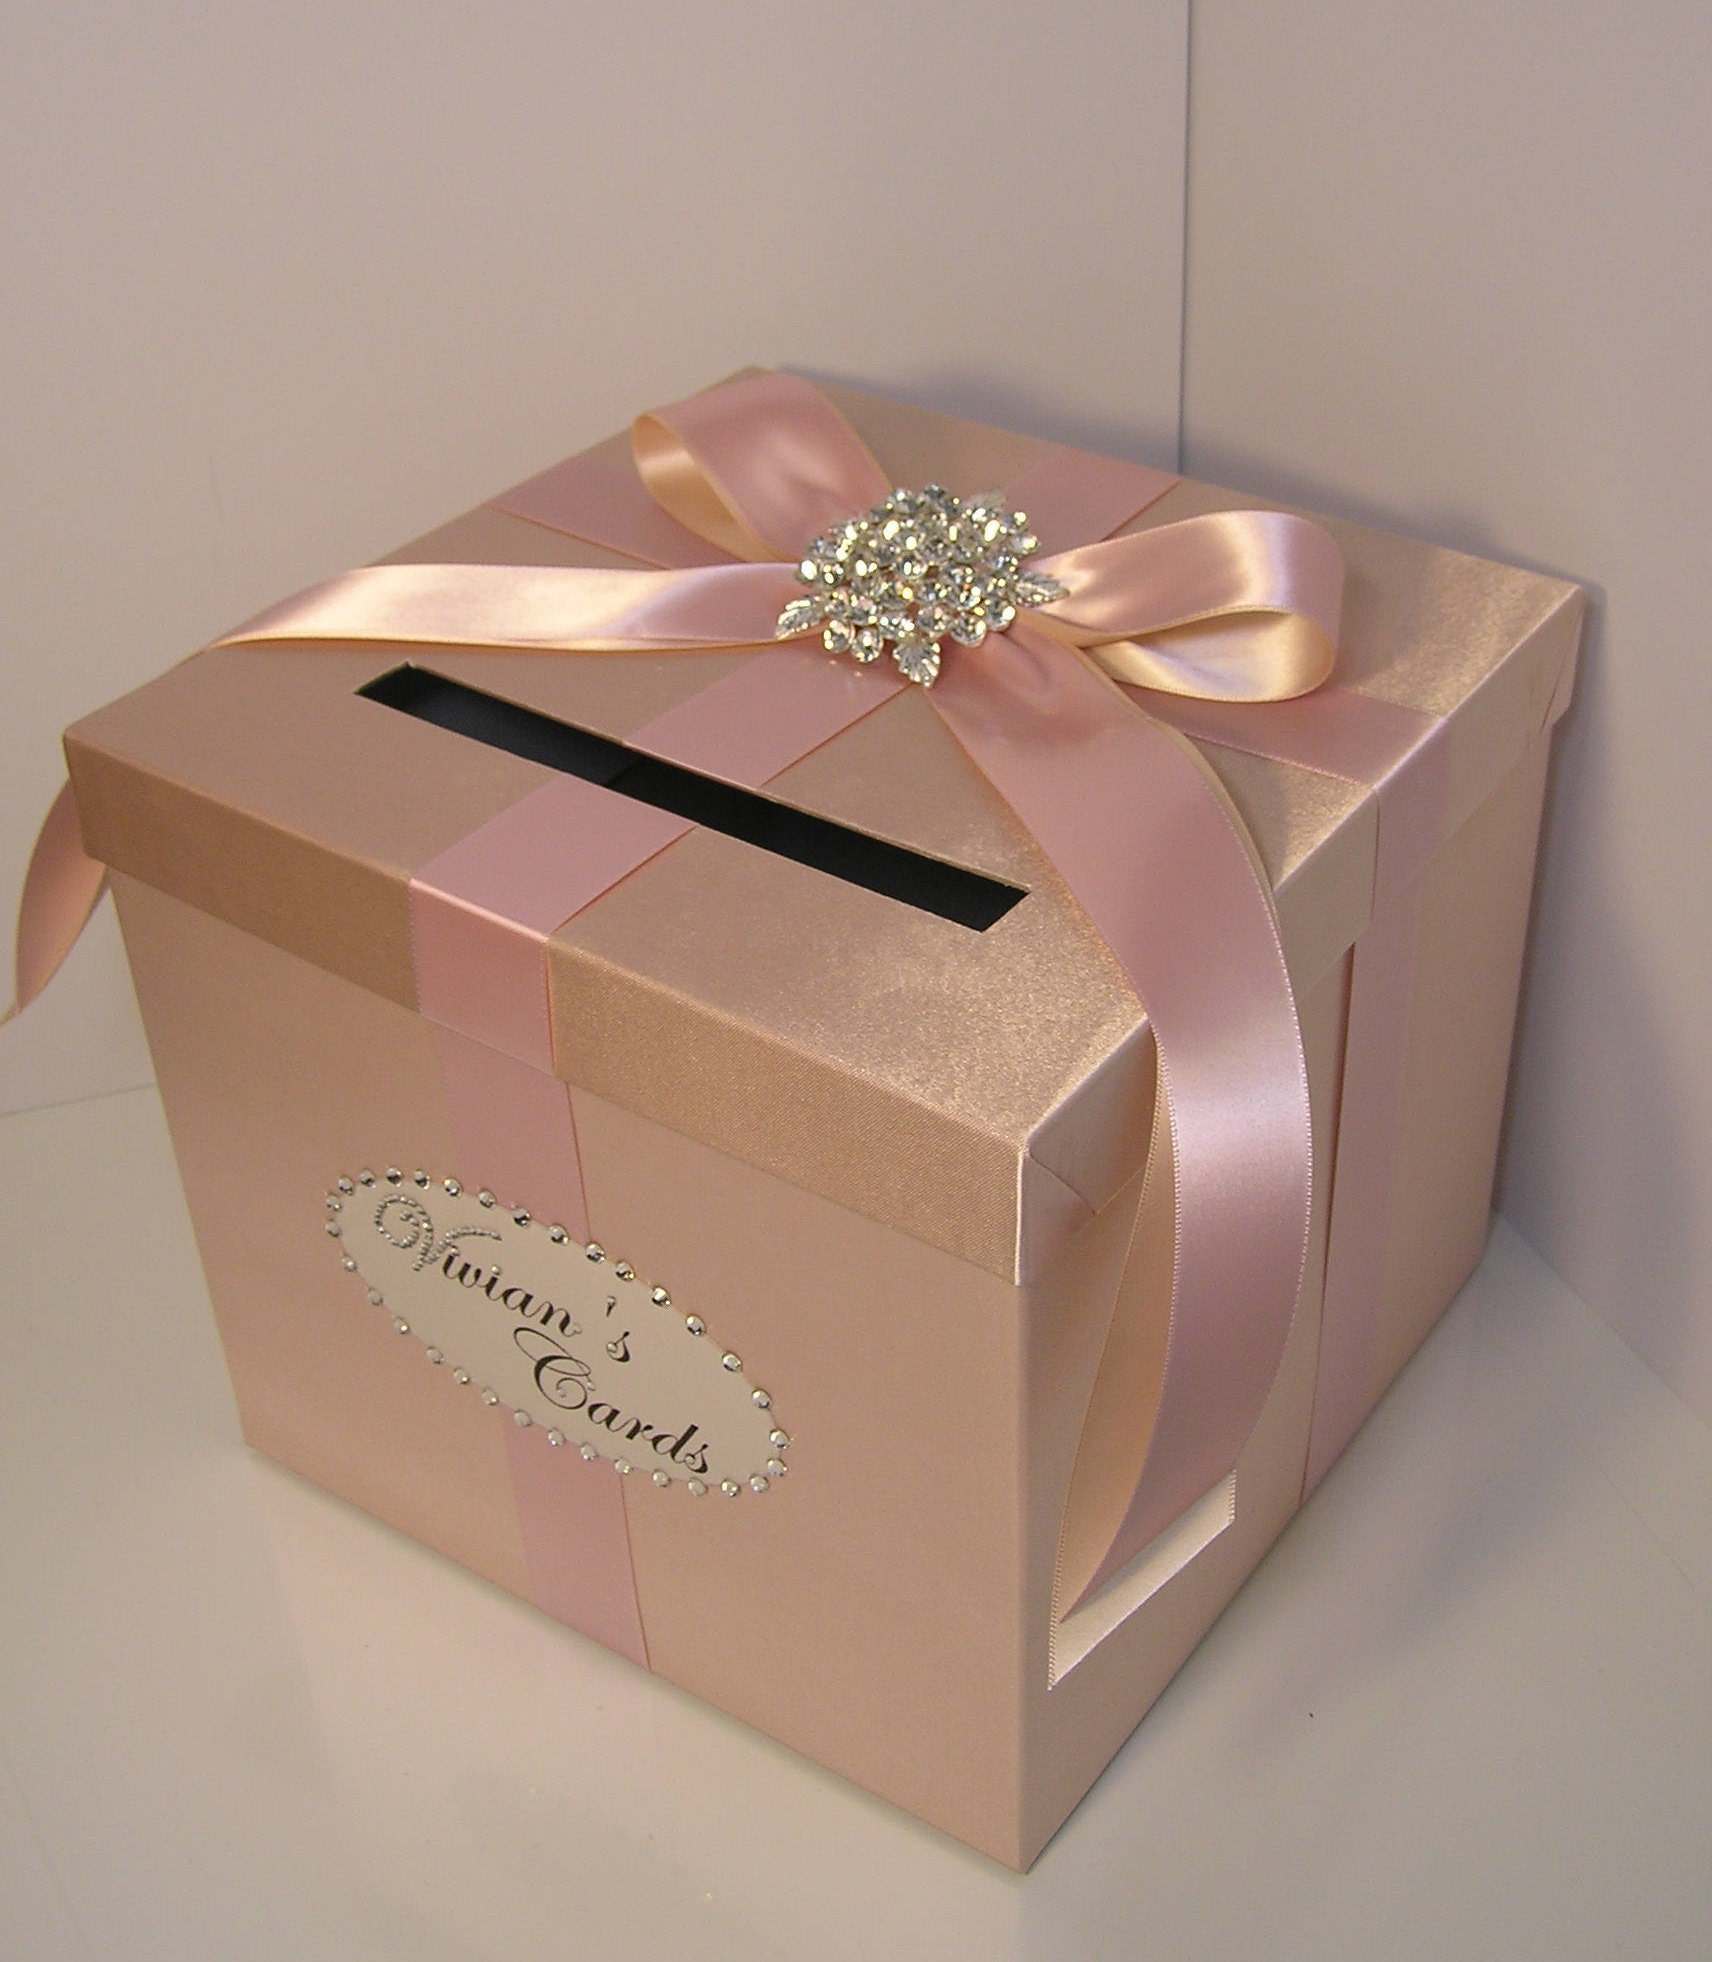 Wedding Card Box Rose Gold And Blush Pink/Nude Gift Card Box